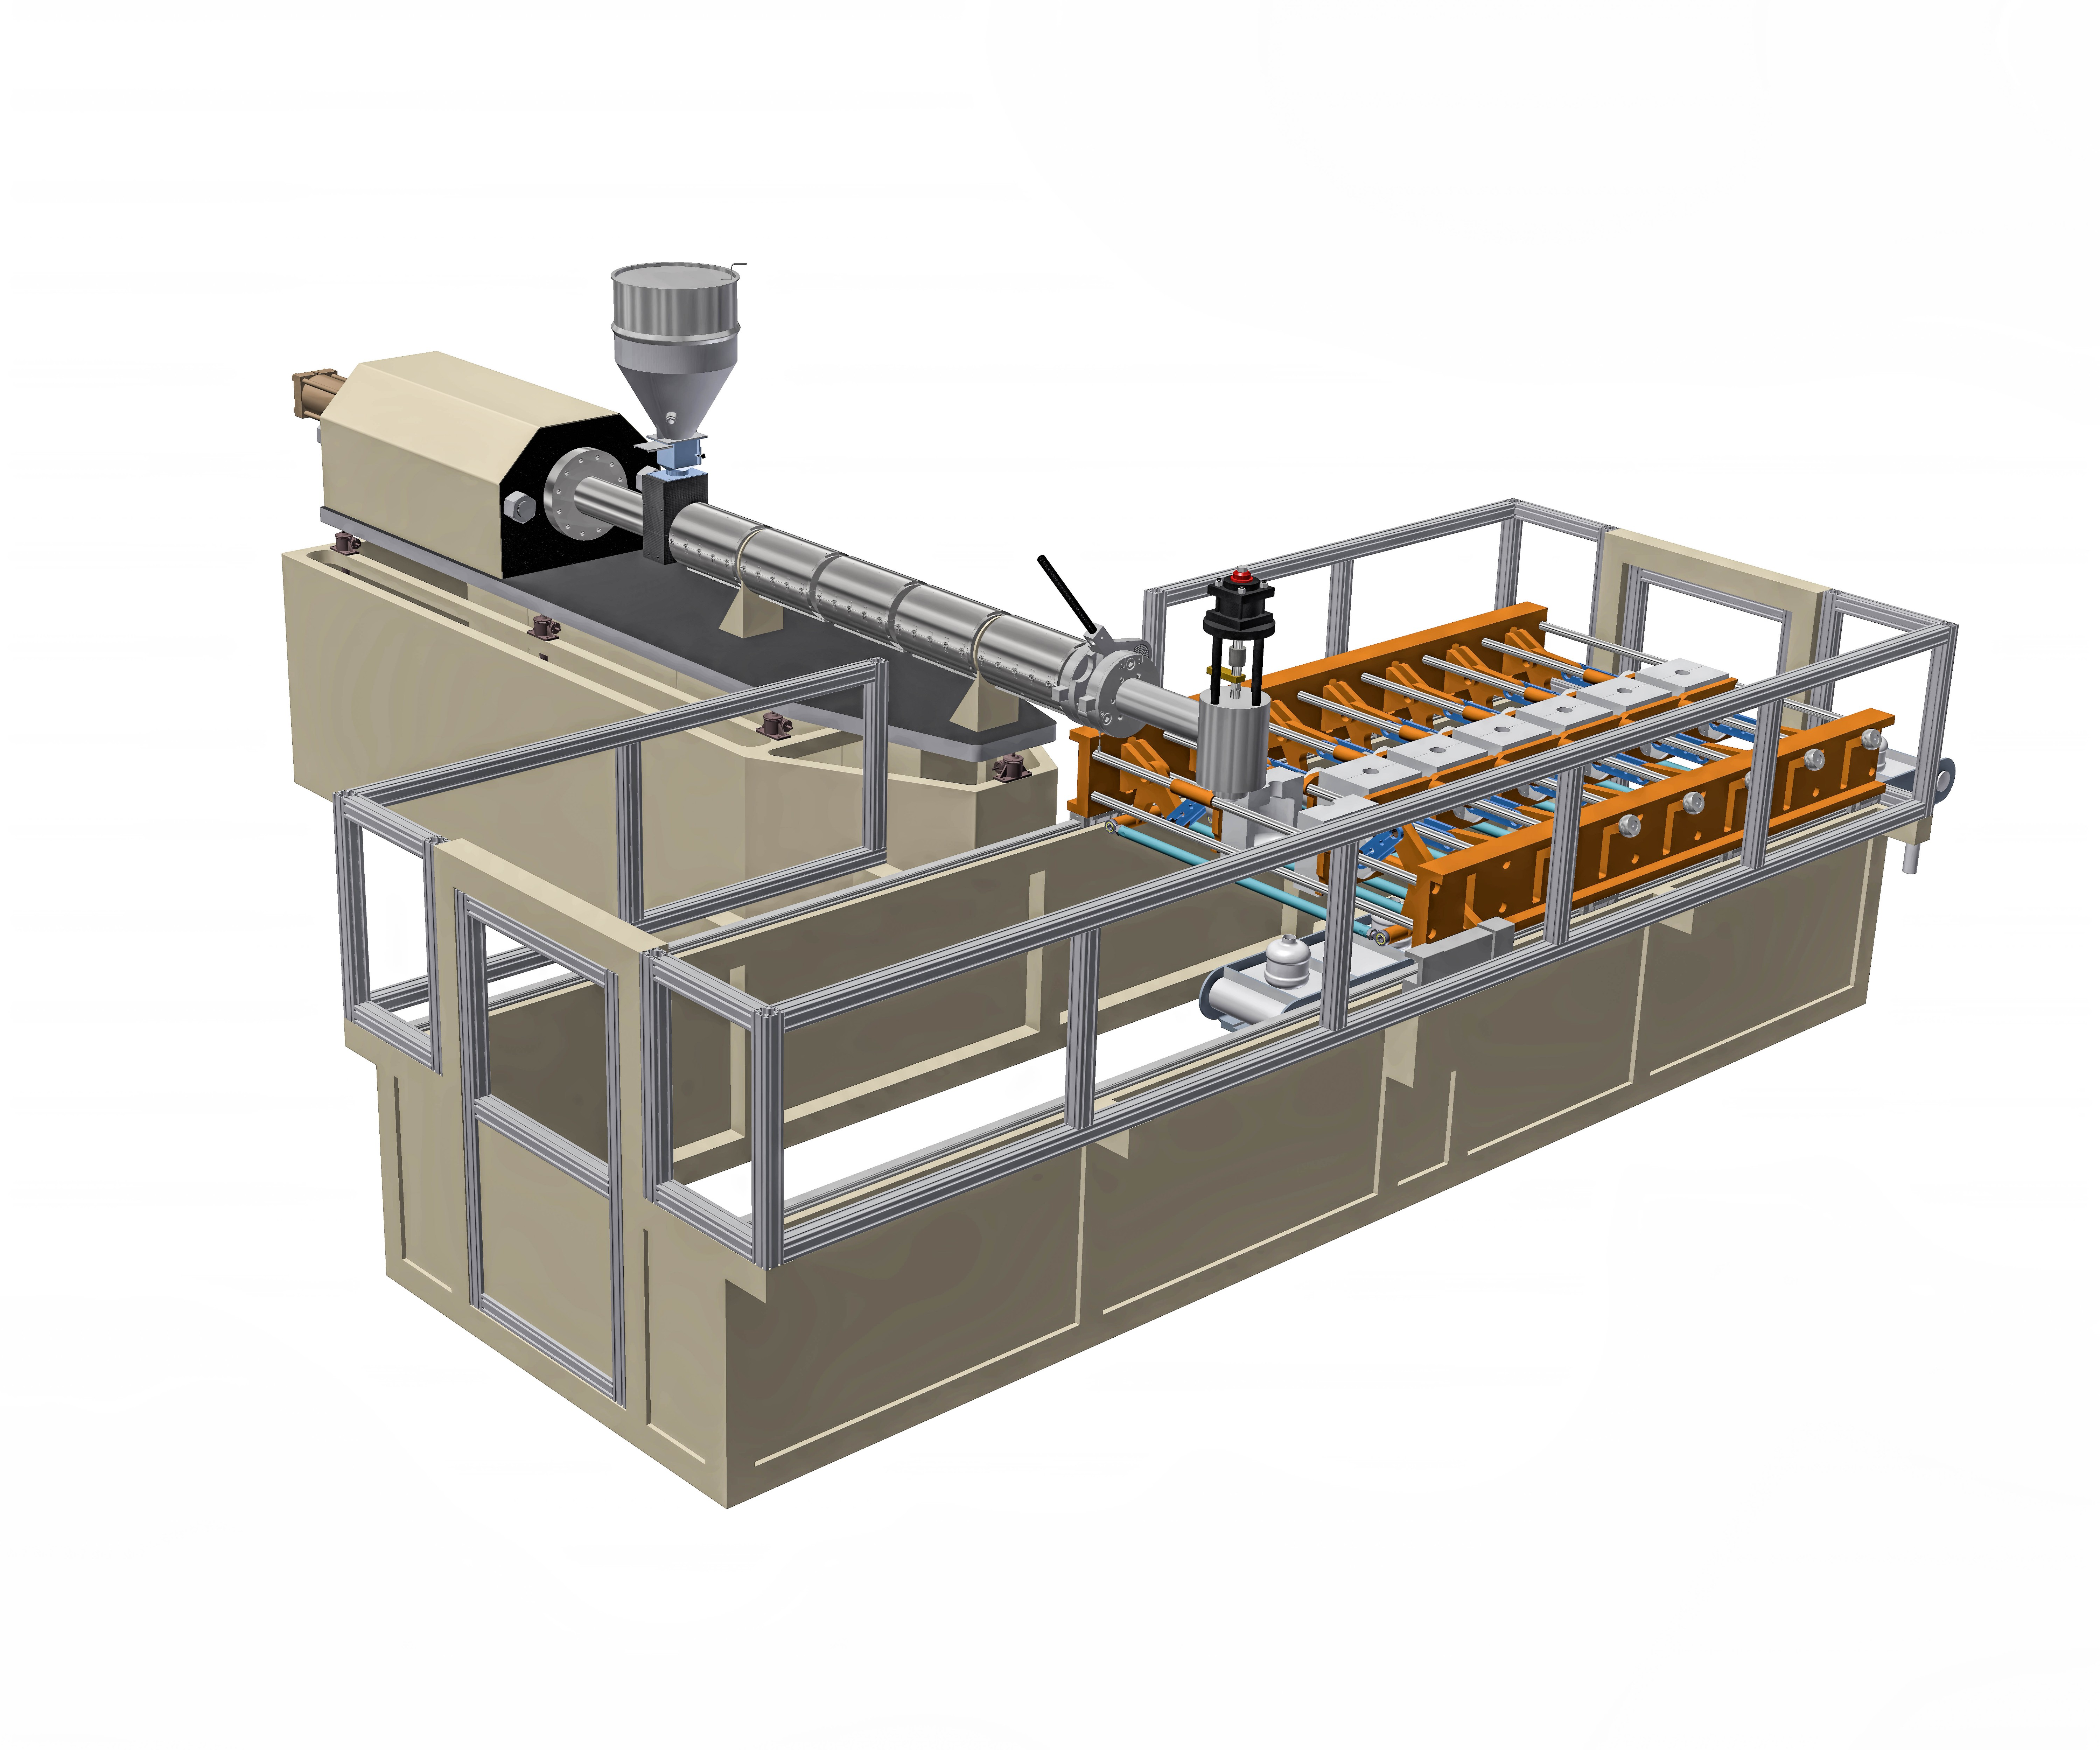 Wilmington Inline reciprocating-screw extrusion blow molder with indexing molds.